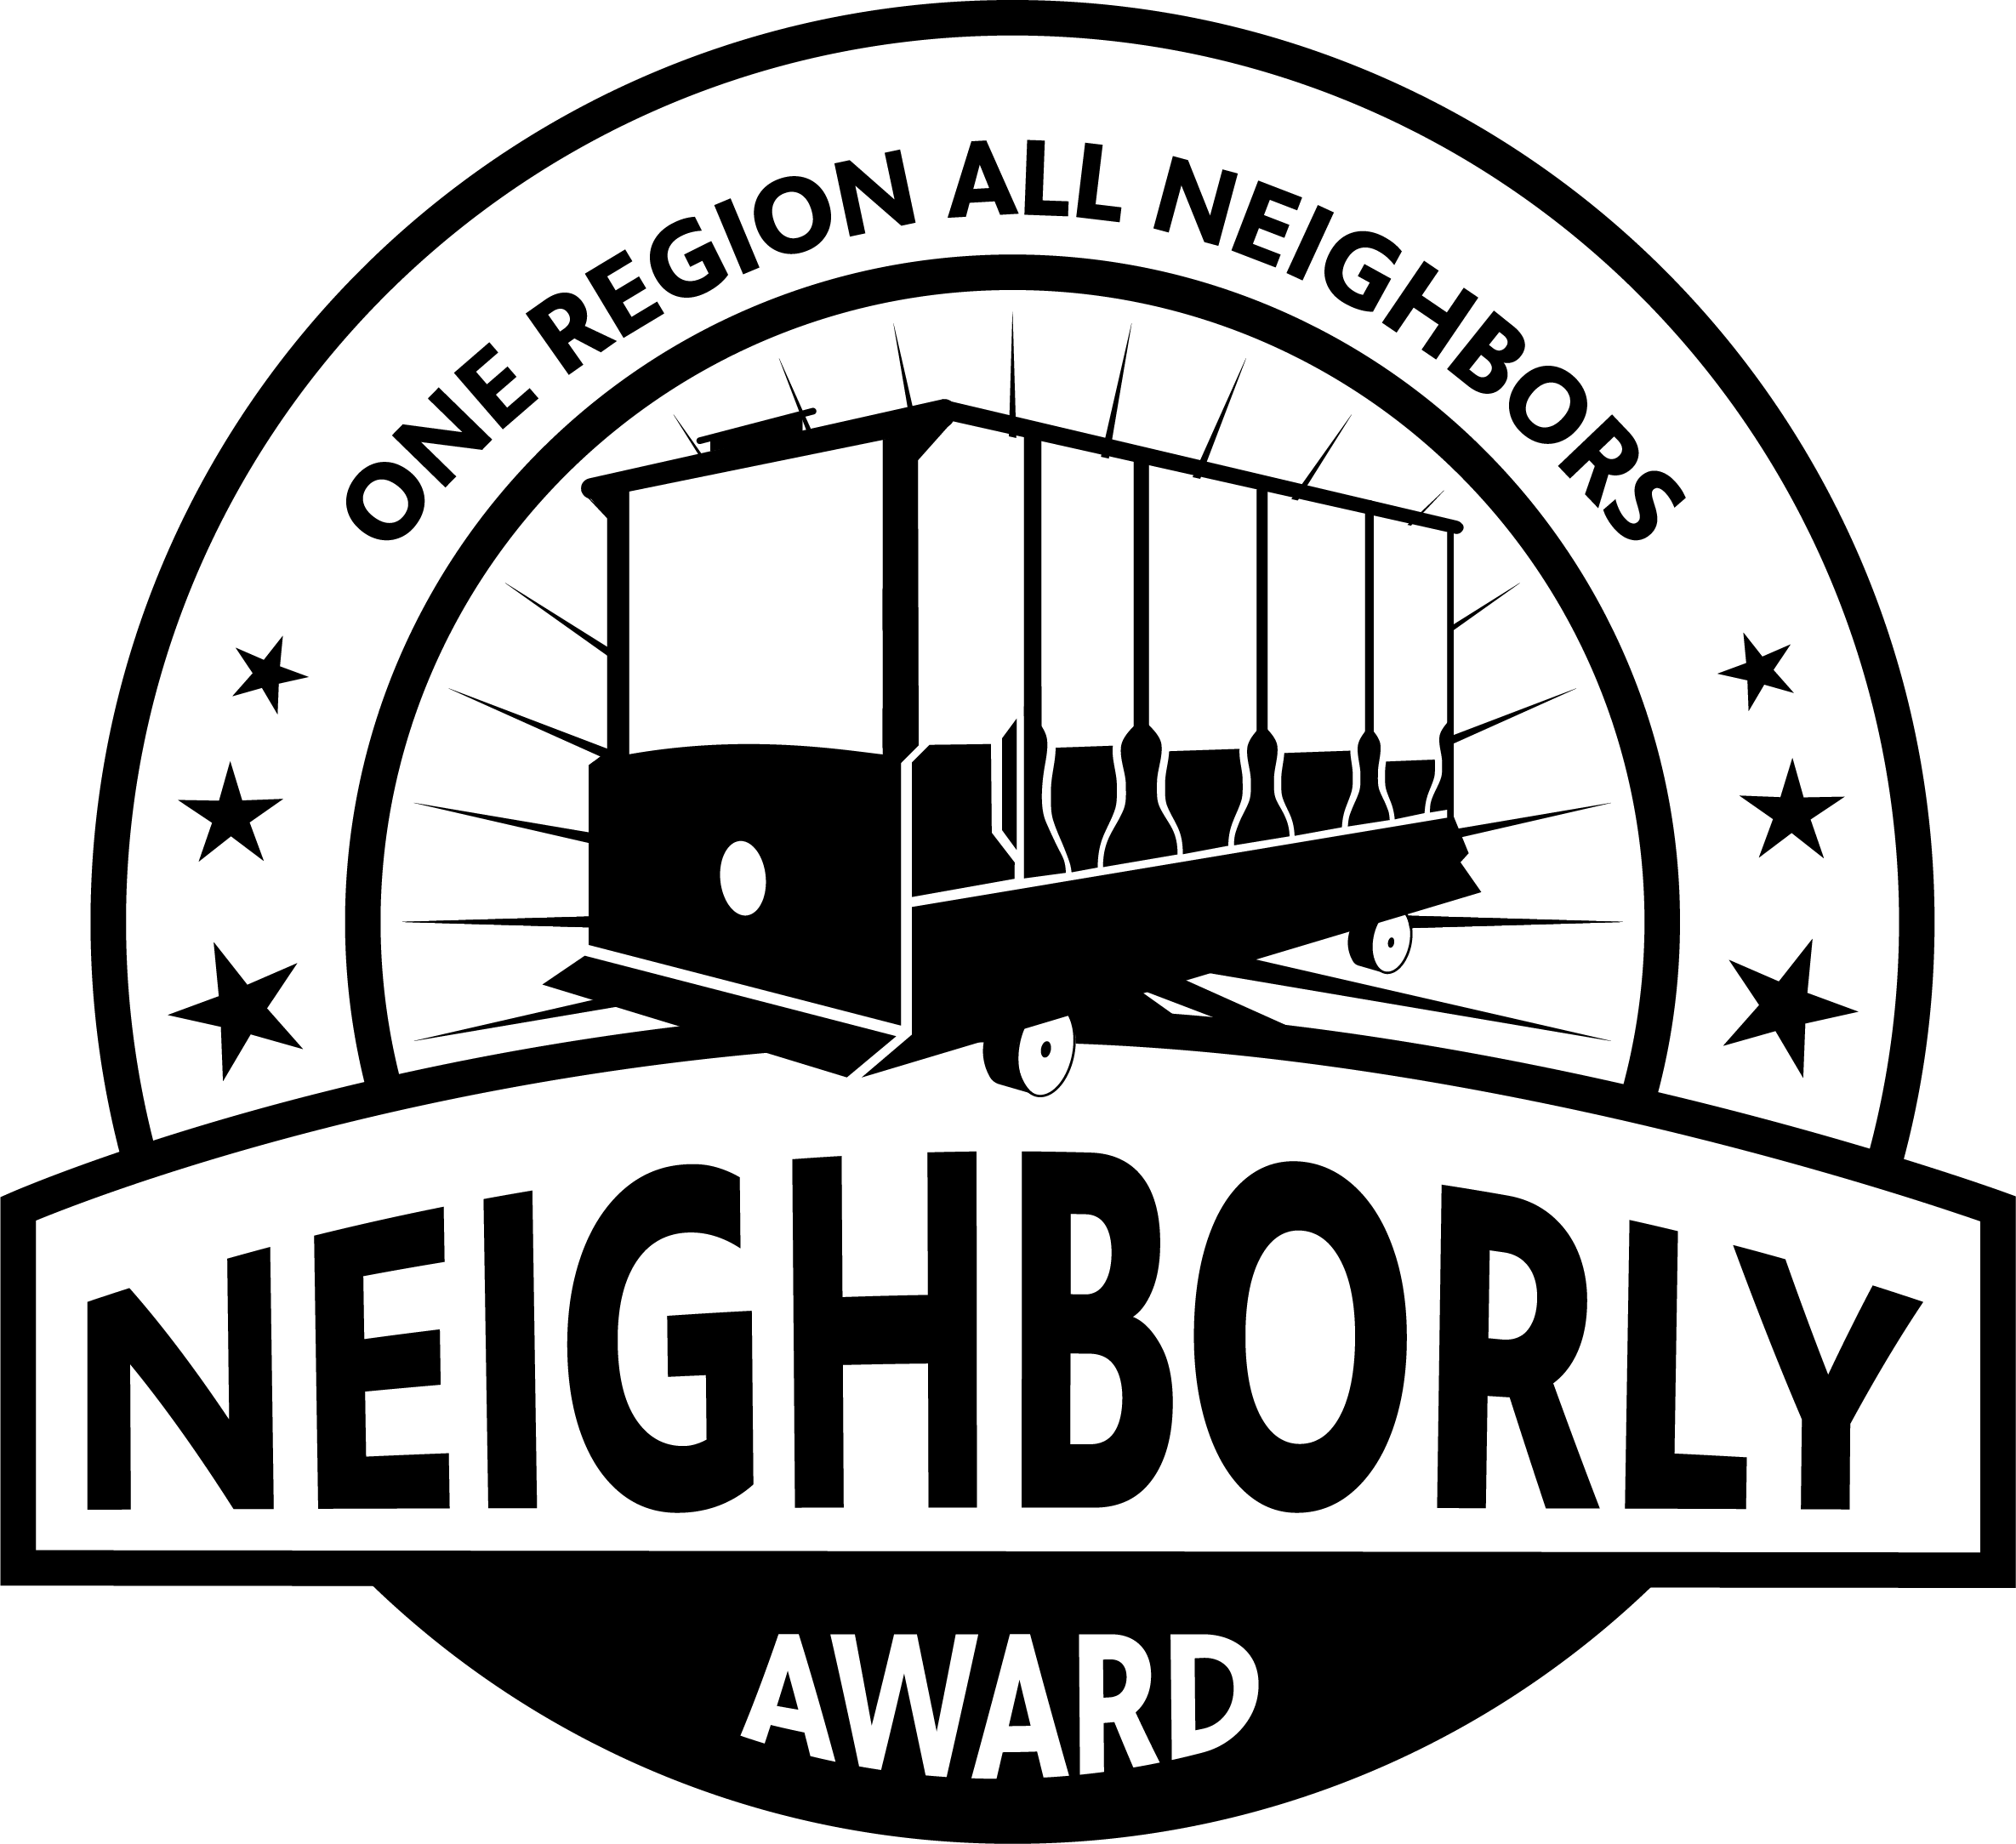 Mister Rogers Neighborly Award